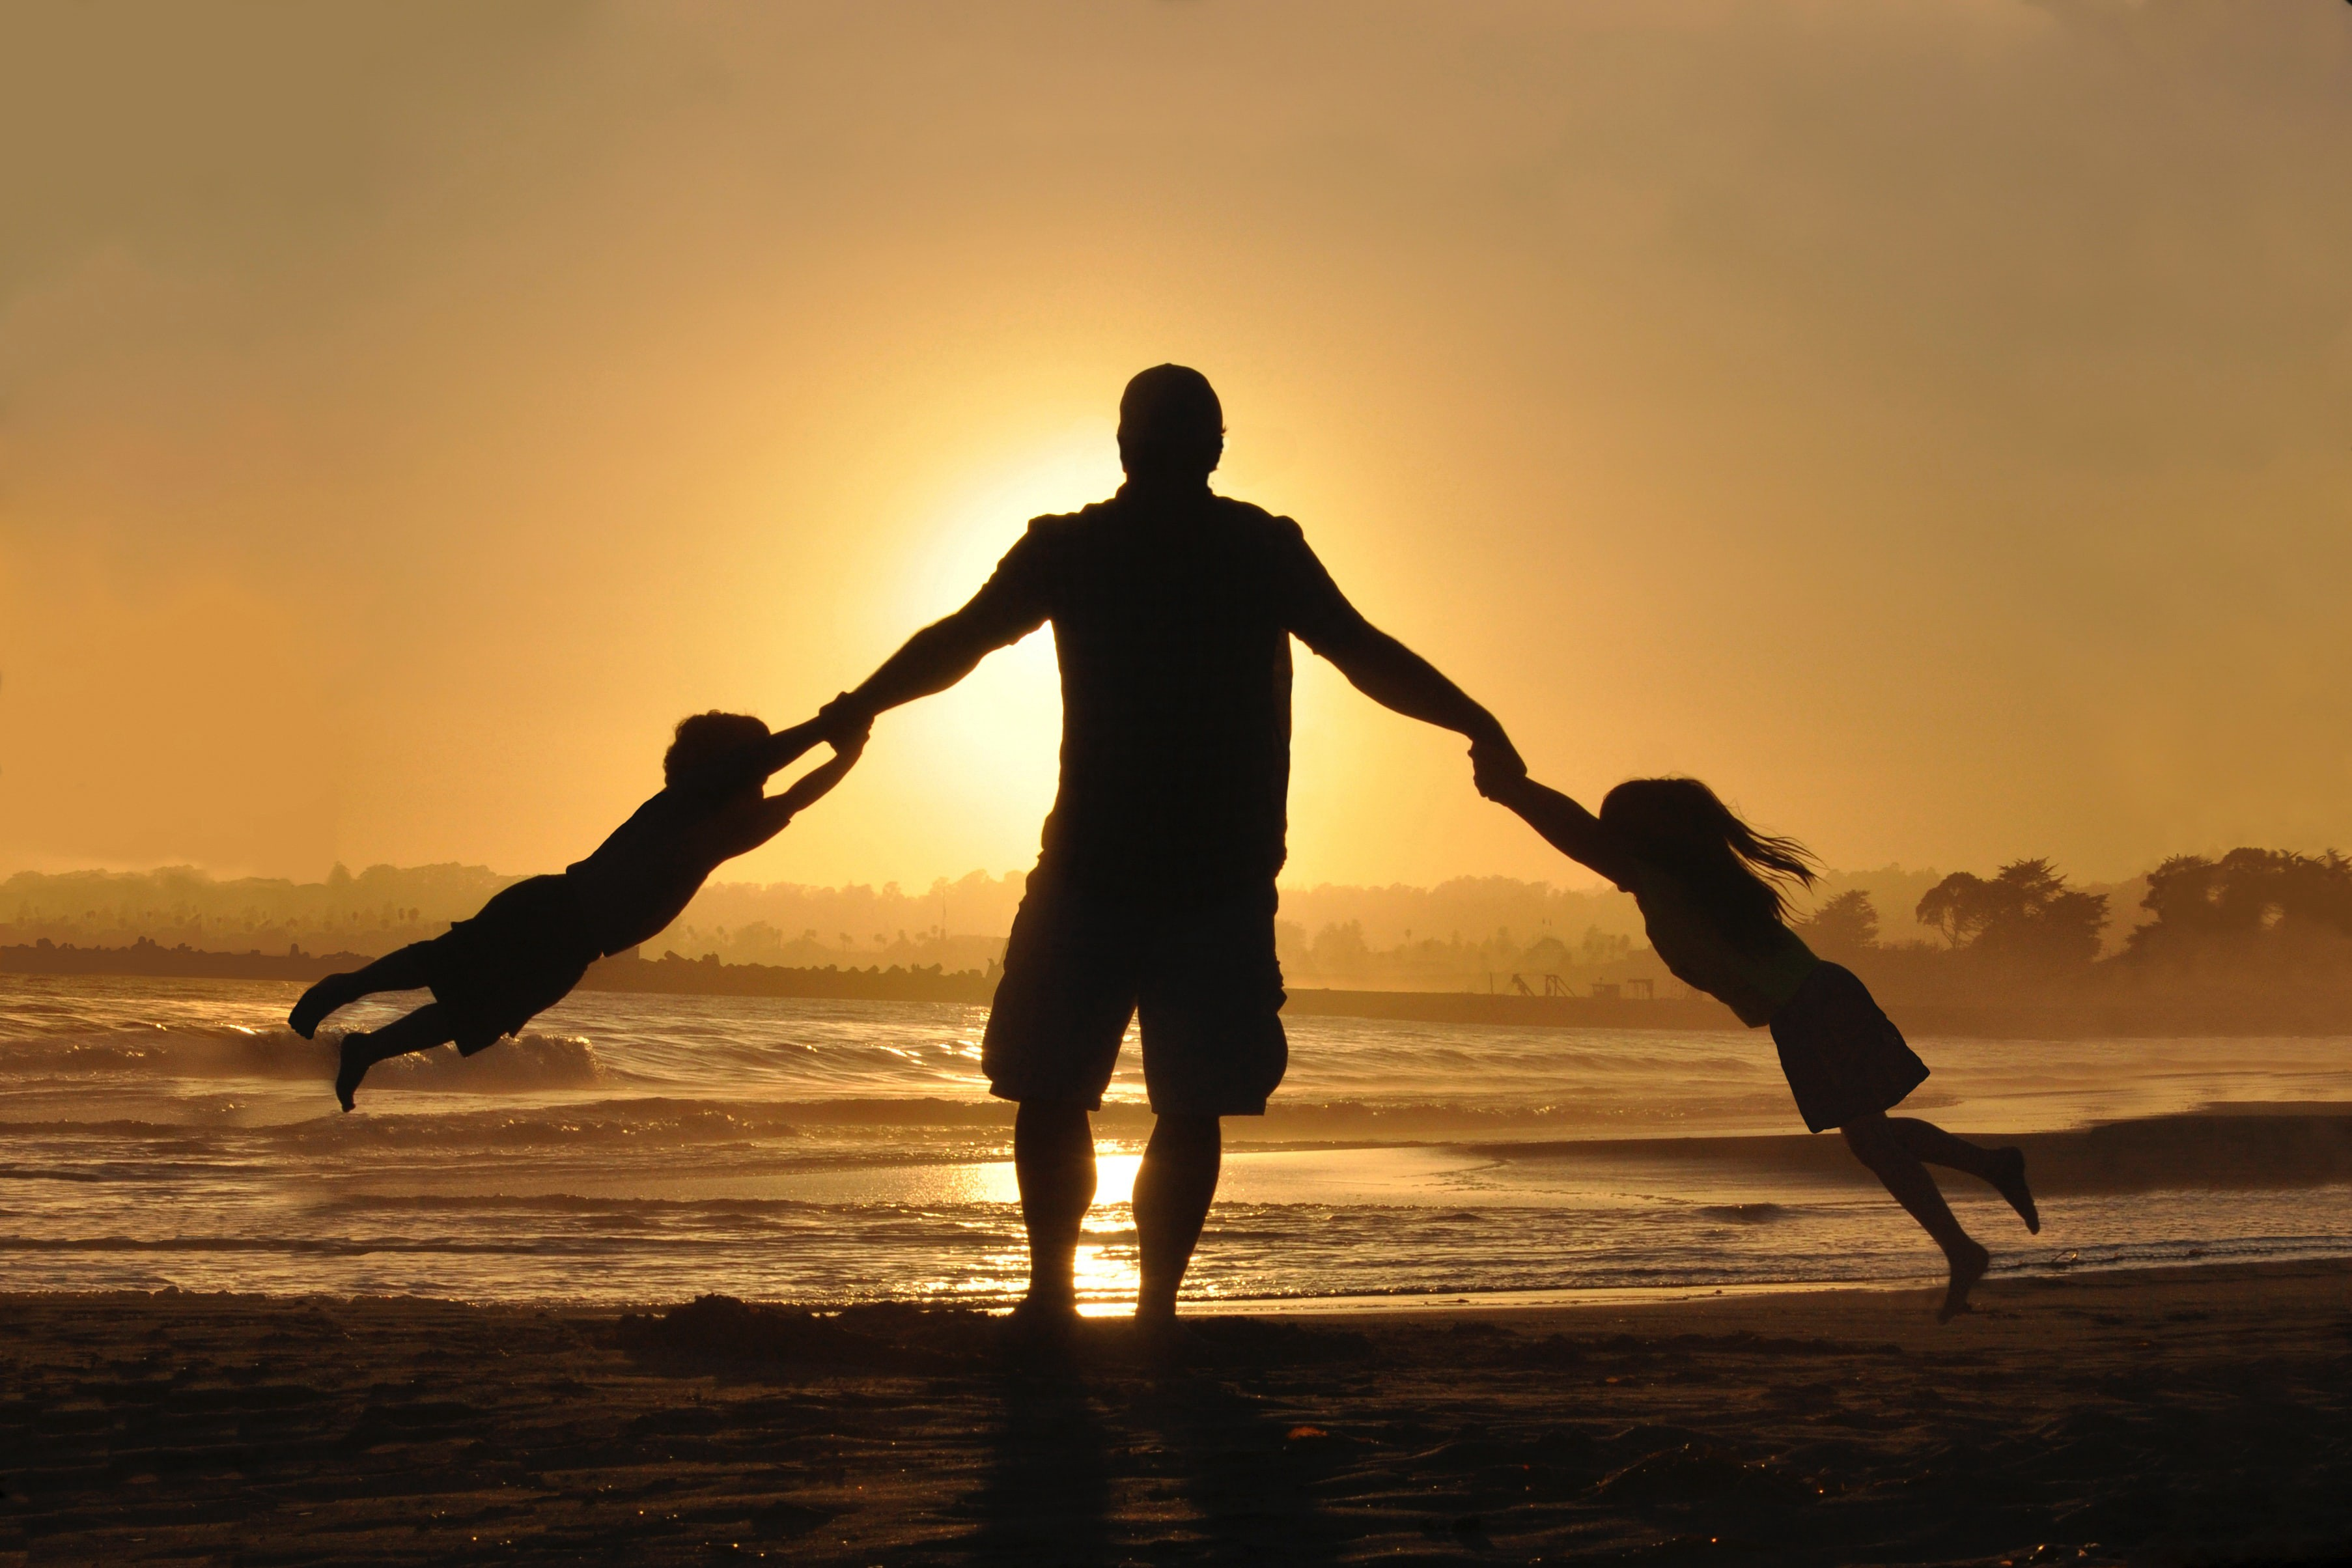 An adult swinging kids from their arms at the ocean during sunset. Symbolizing present parenting and play.